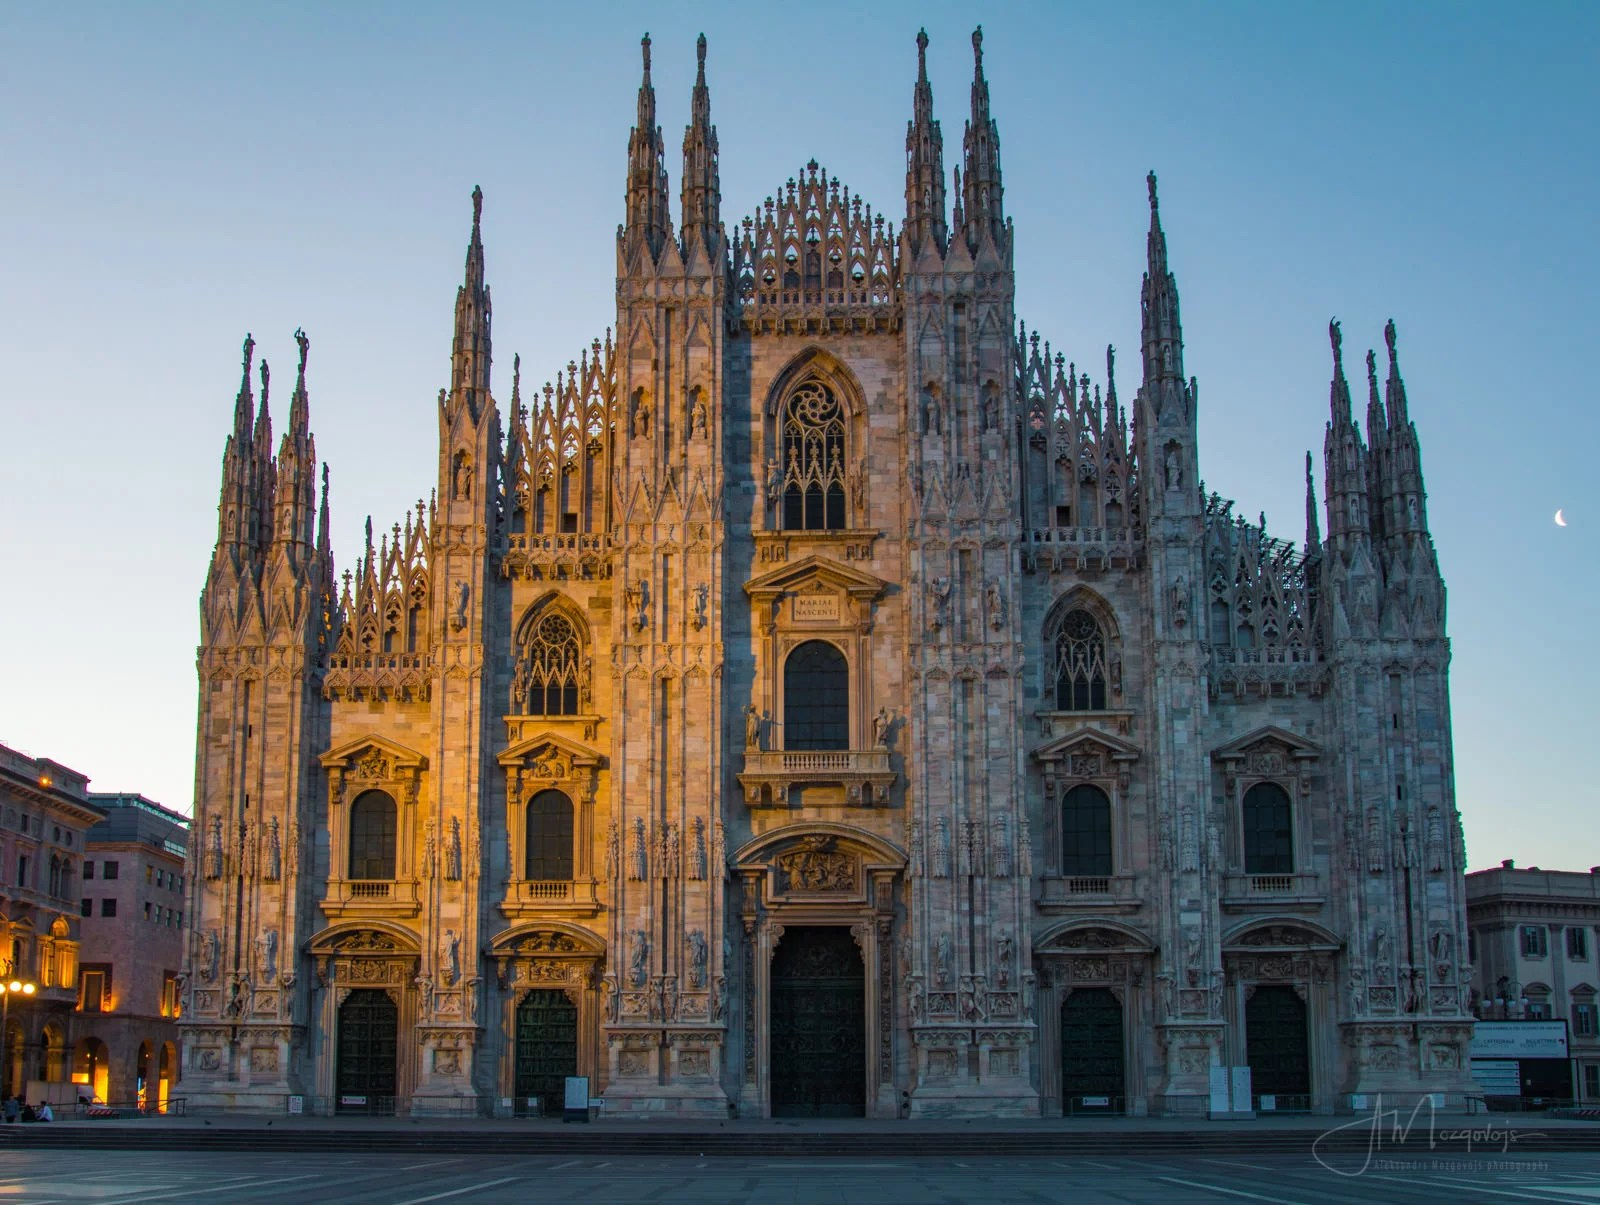 Duomo is without a doubt the number one tourist and photo location in Milan